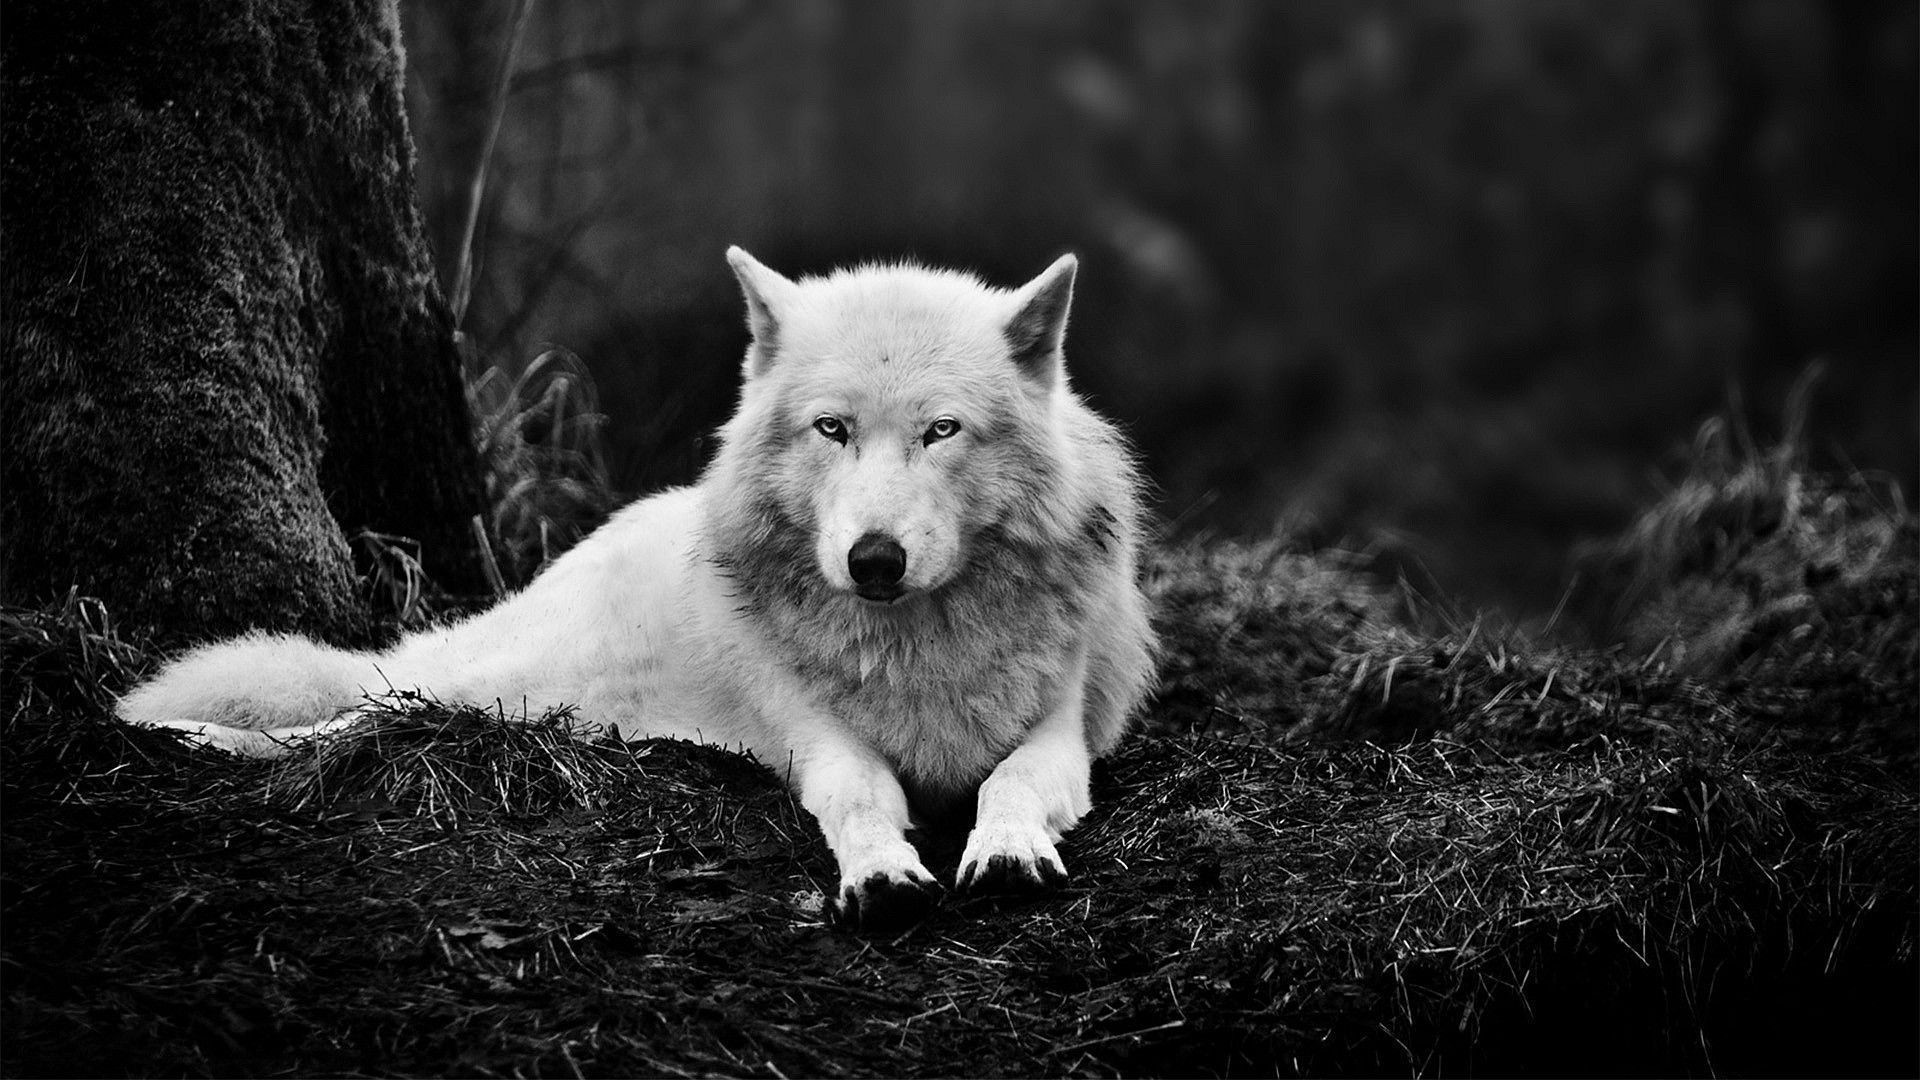 1920x1080 Wolf Wallpapers Wallpaper 1920×1080 Wolves HD Wallpapers (45 Wallpapers) |  Adorable Wallpapers